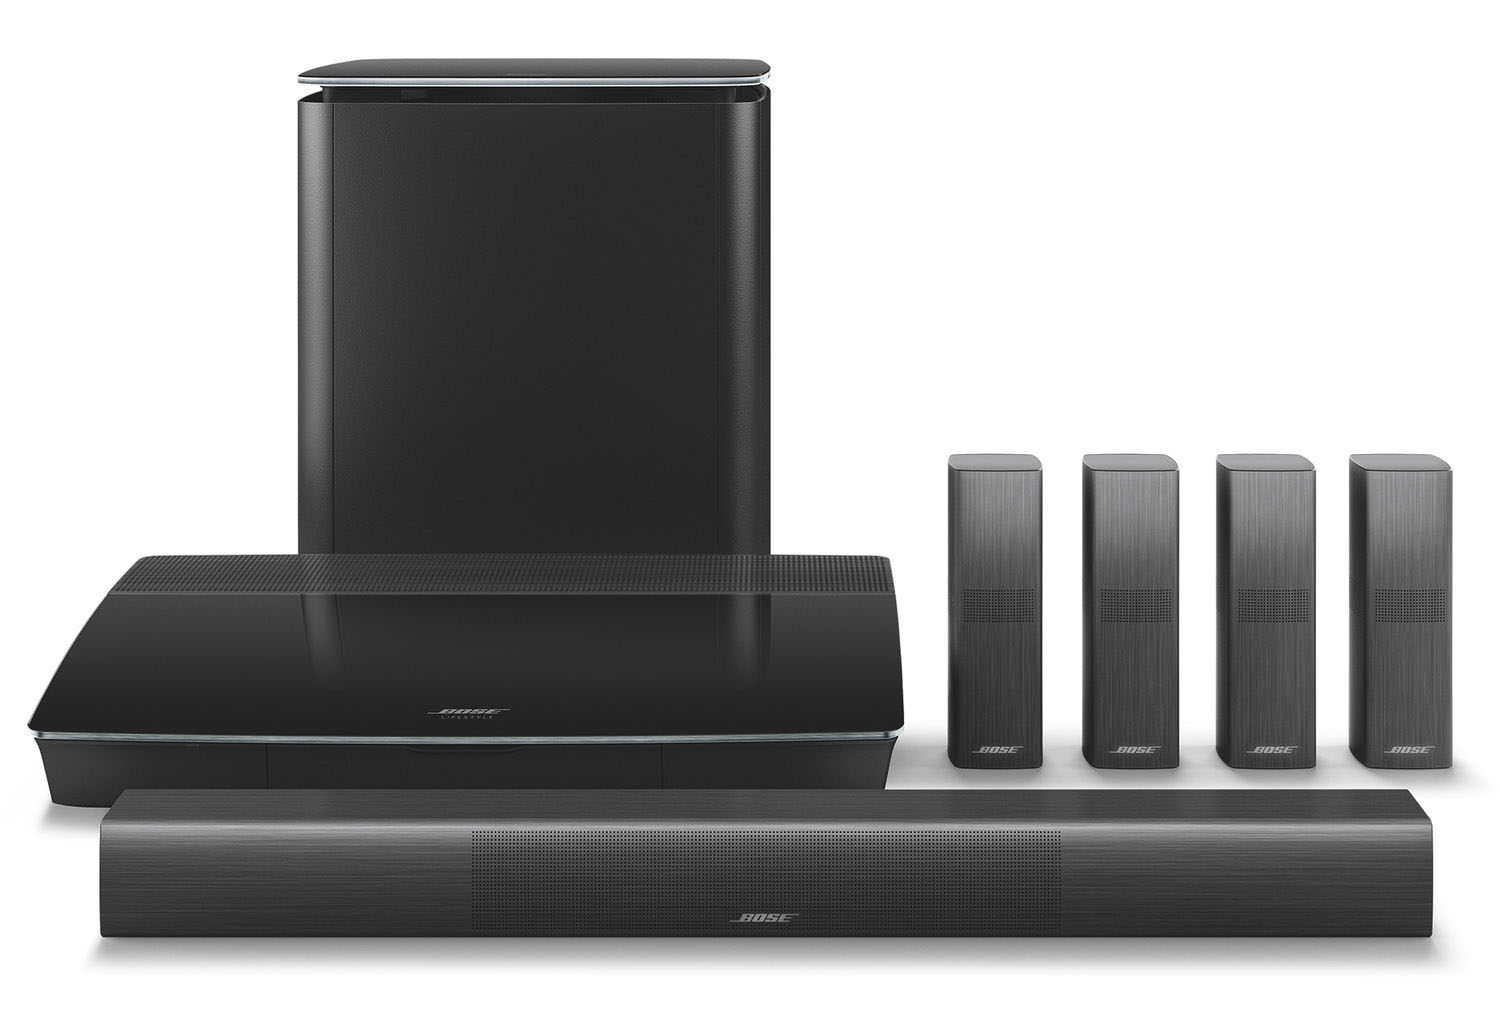 Bose 91015030ls650 Online Speakers Store Israel Buy Price Soundtouch 300 With Acoustimass Plus Virtually Invisible Lifestyle 650